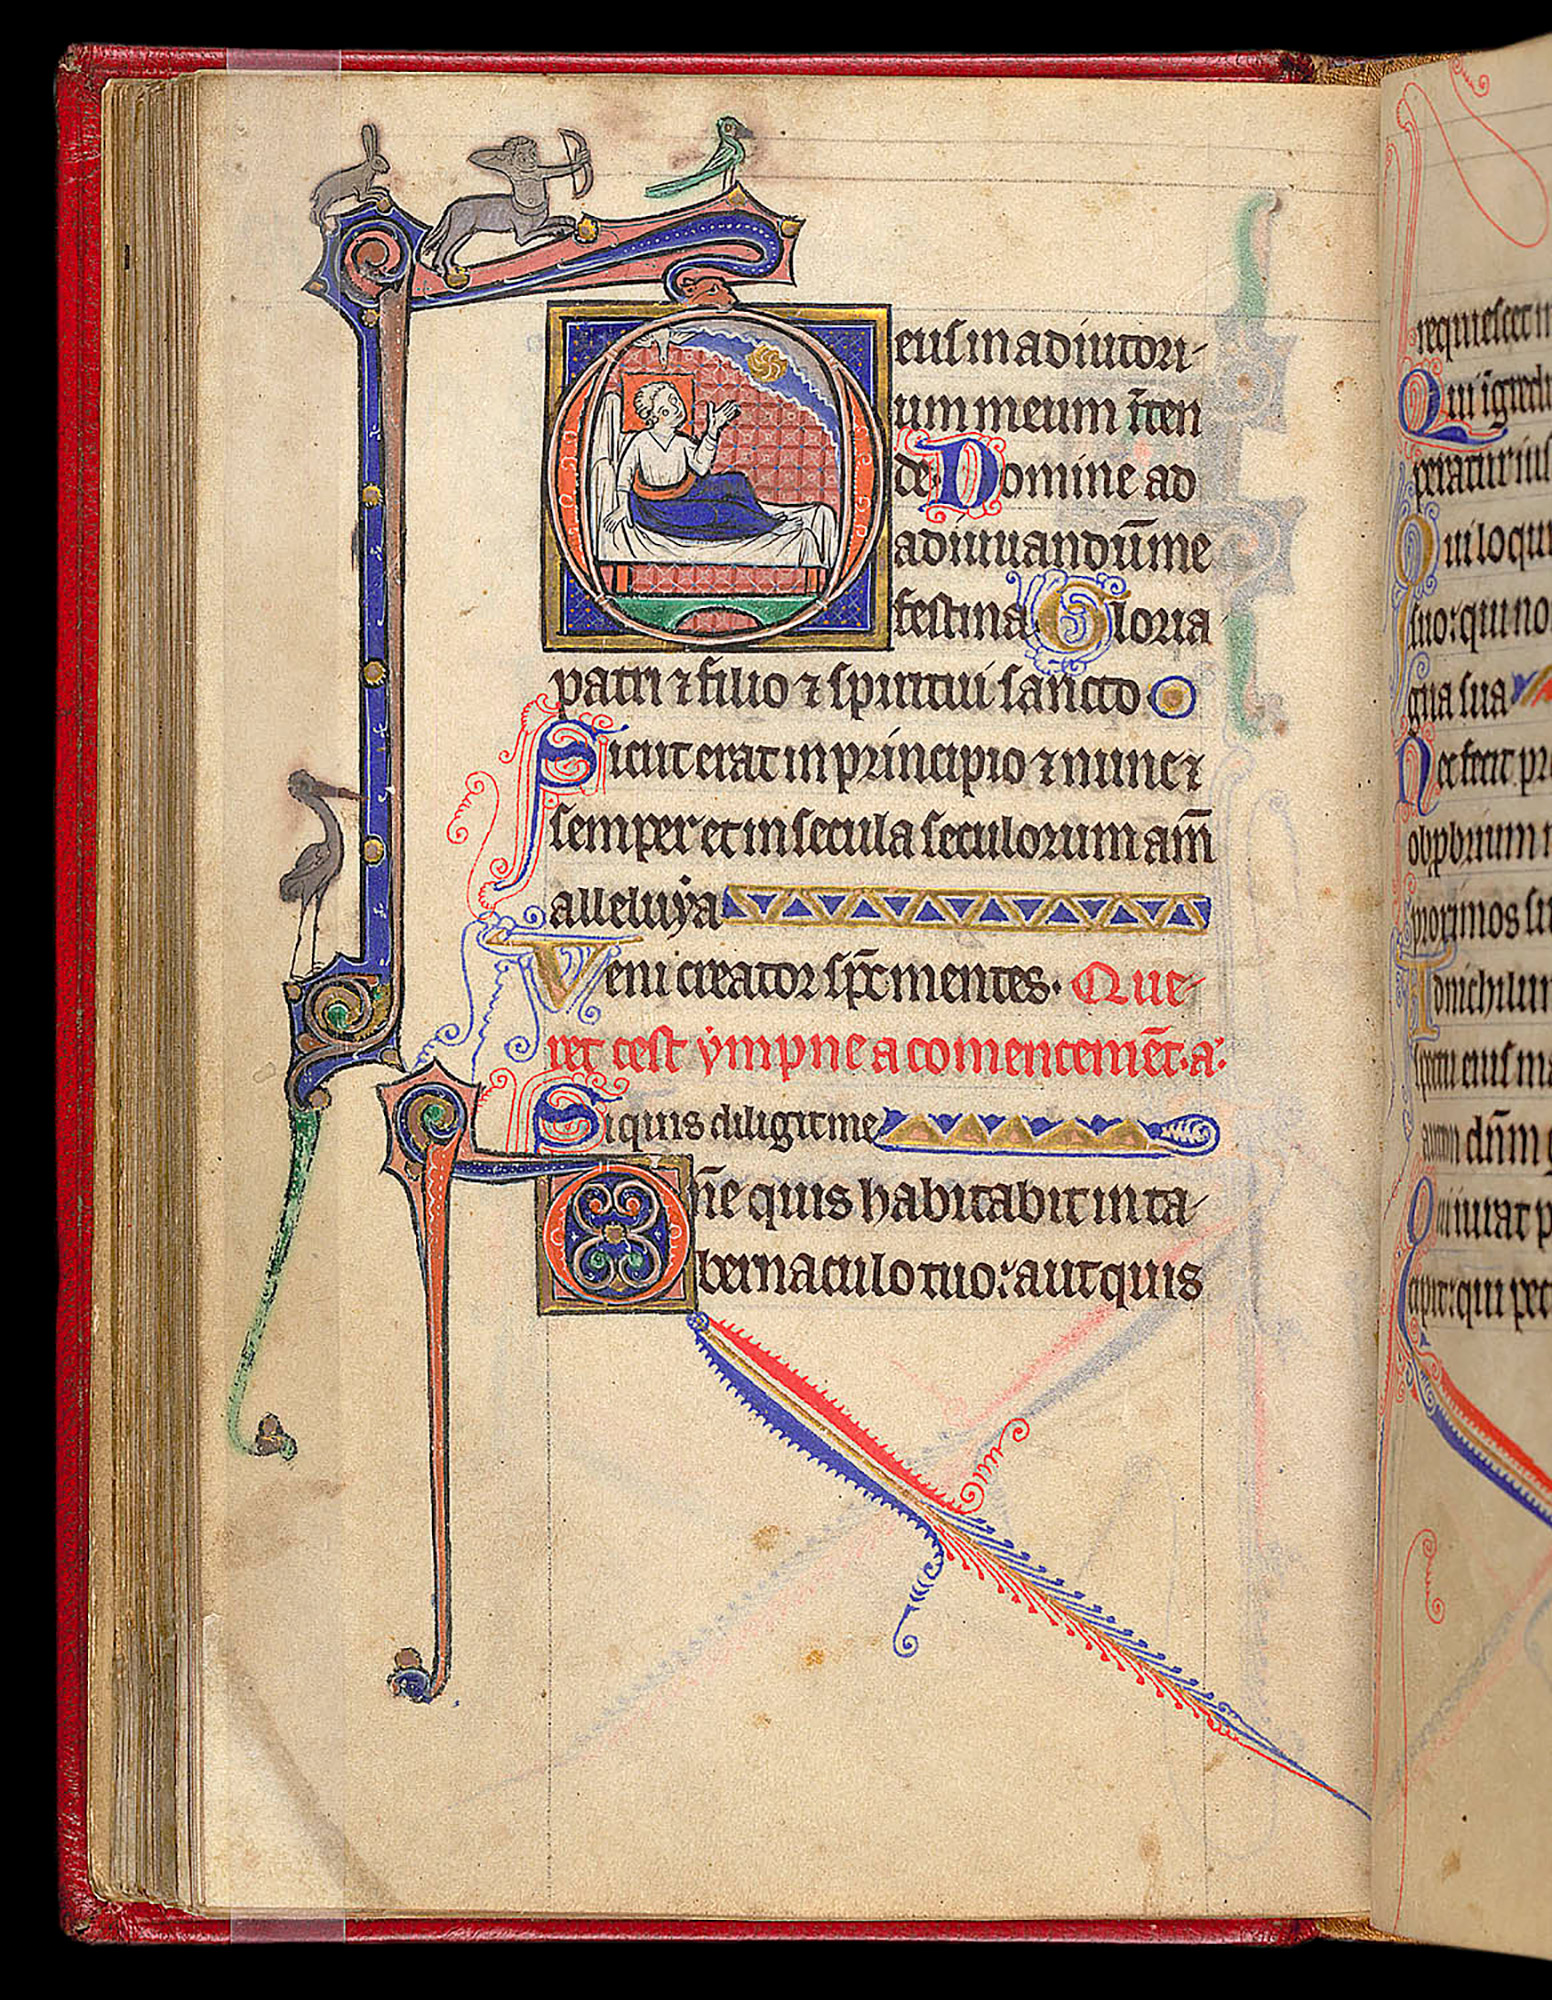 13th-century English Book of Hours. Egerton MS 1151, f. 88v